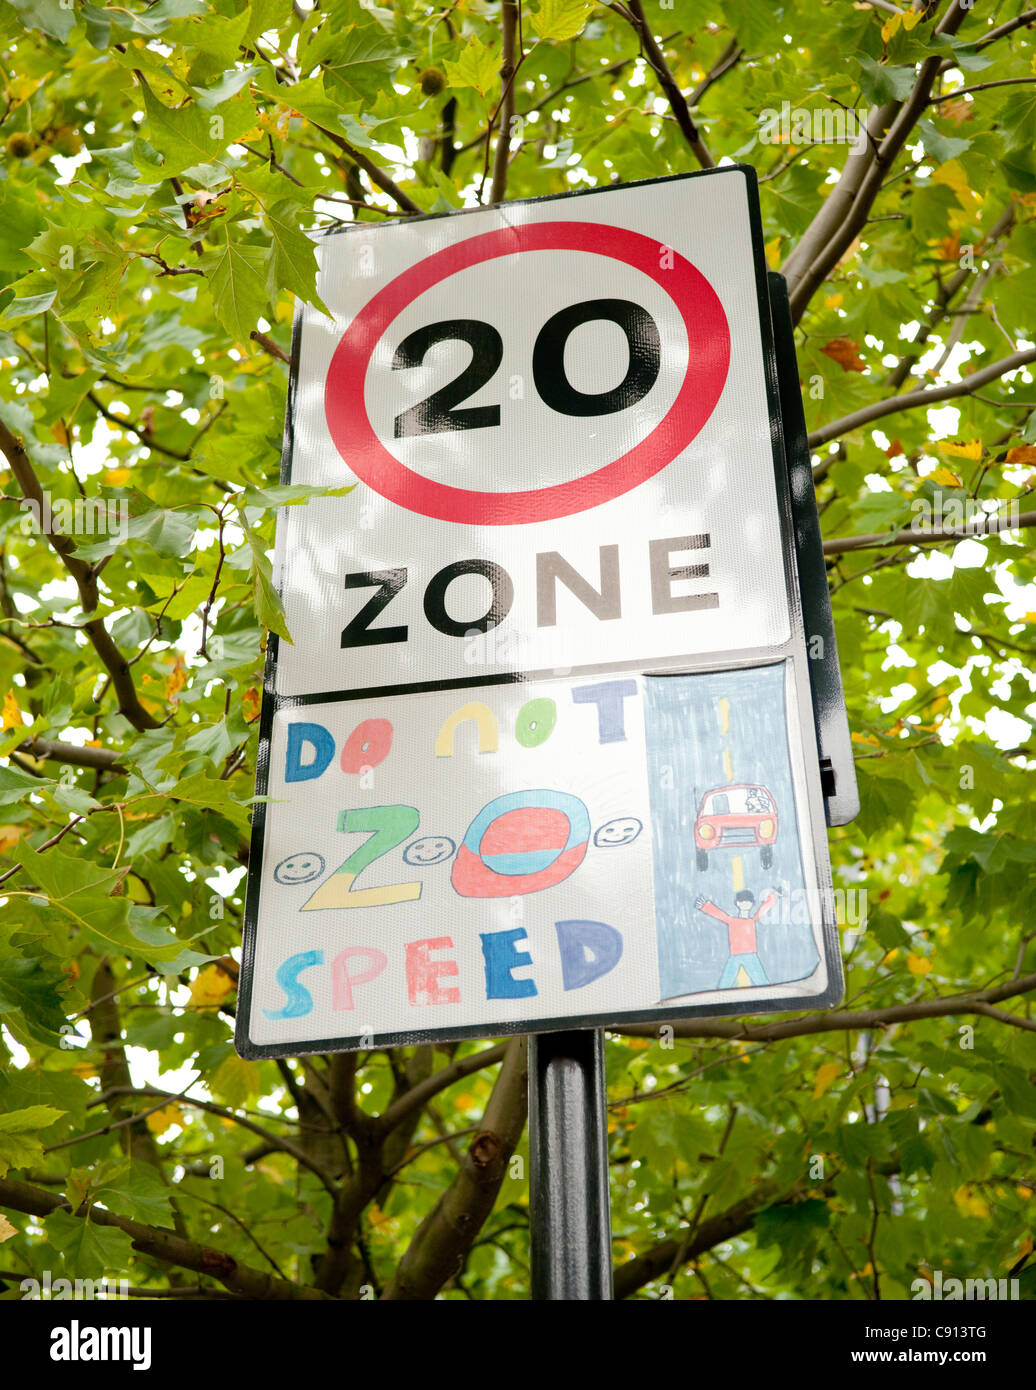 Many residential streets in London boroughs have a speed limit of 20 miles per hour as a safety measure enforced - Stock Image